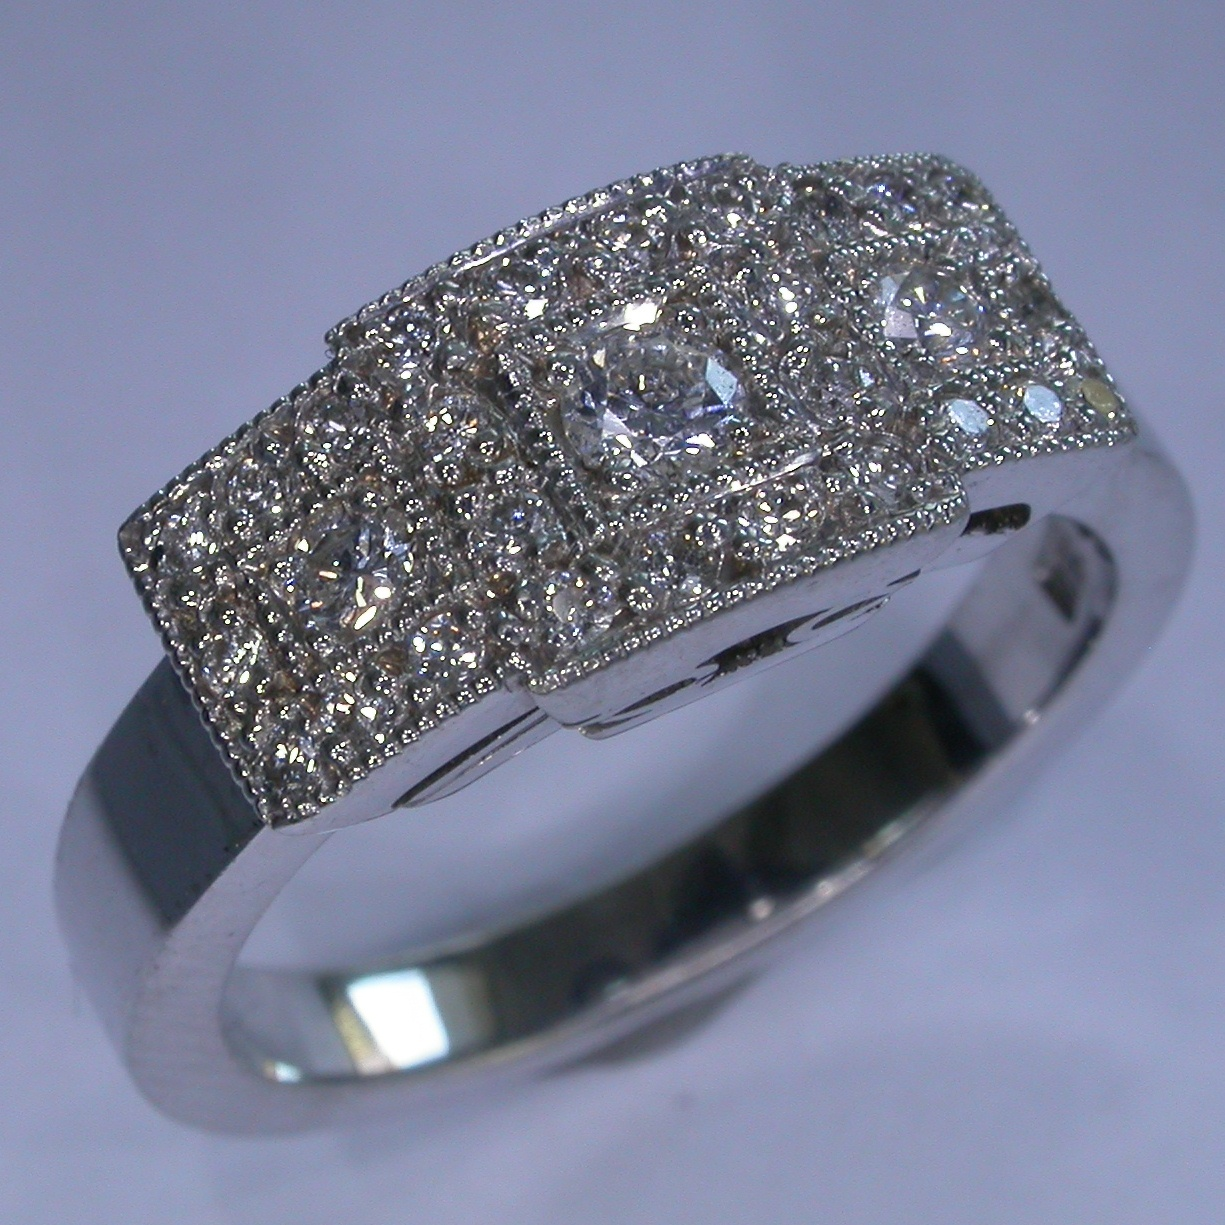 Diamond Engagement Ring in Melbourne - #7274